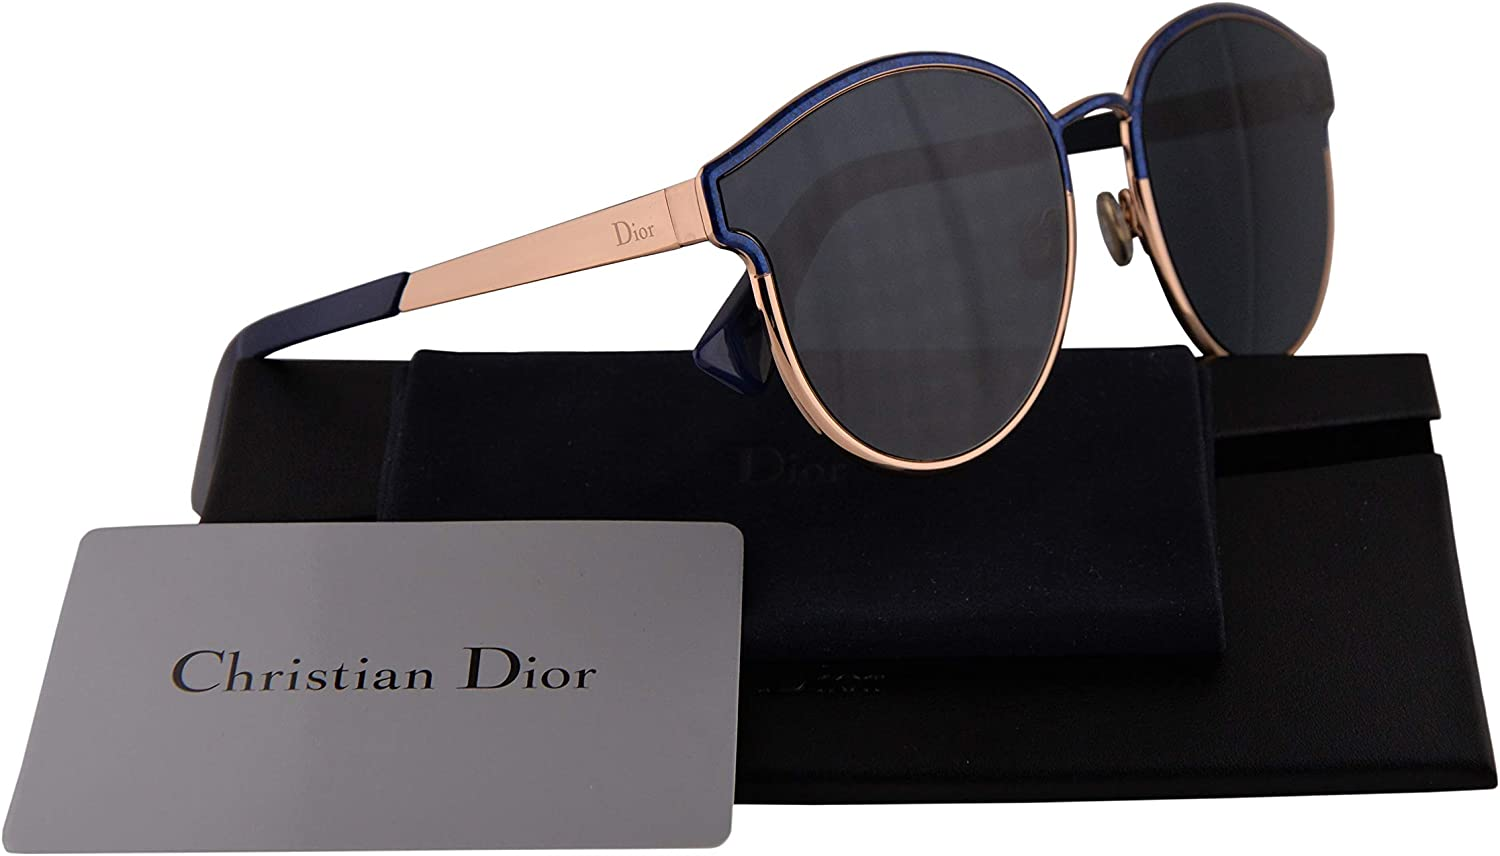 Christian Dior DiorSymmetric Sunglasses Marble bluee w bluee Mirror Lens 59mm NUMA9